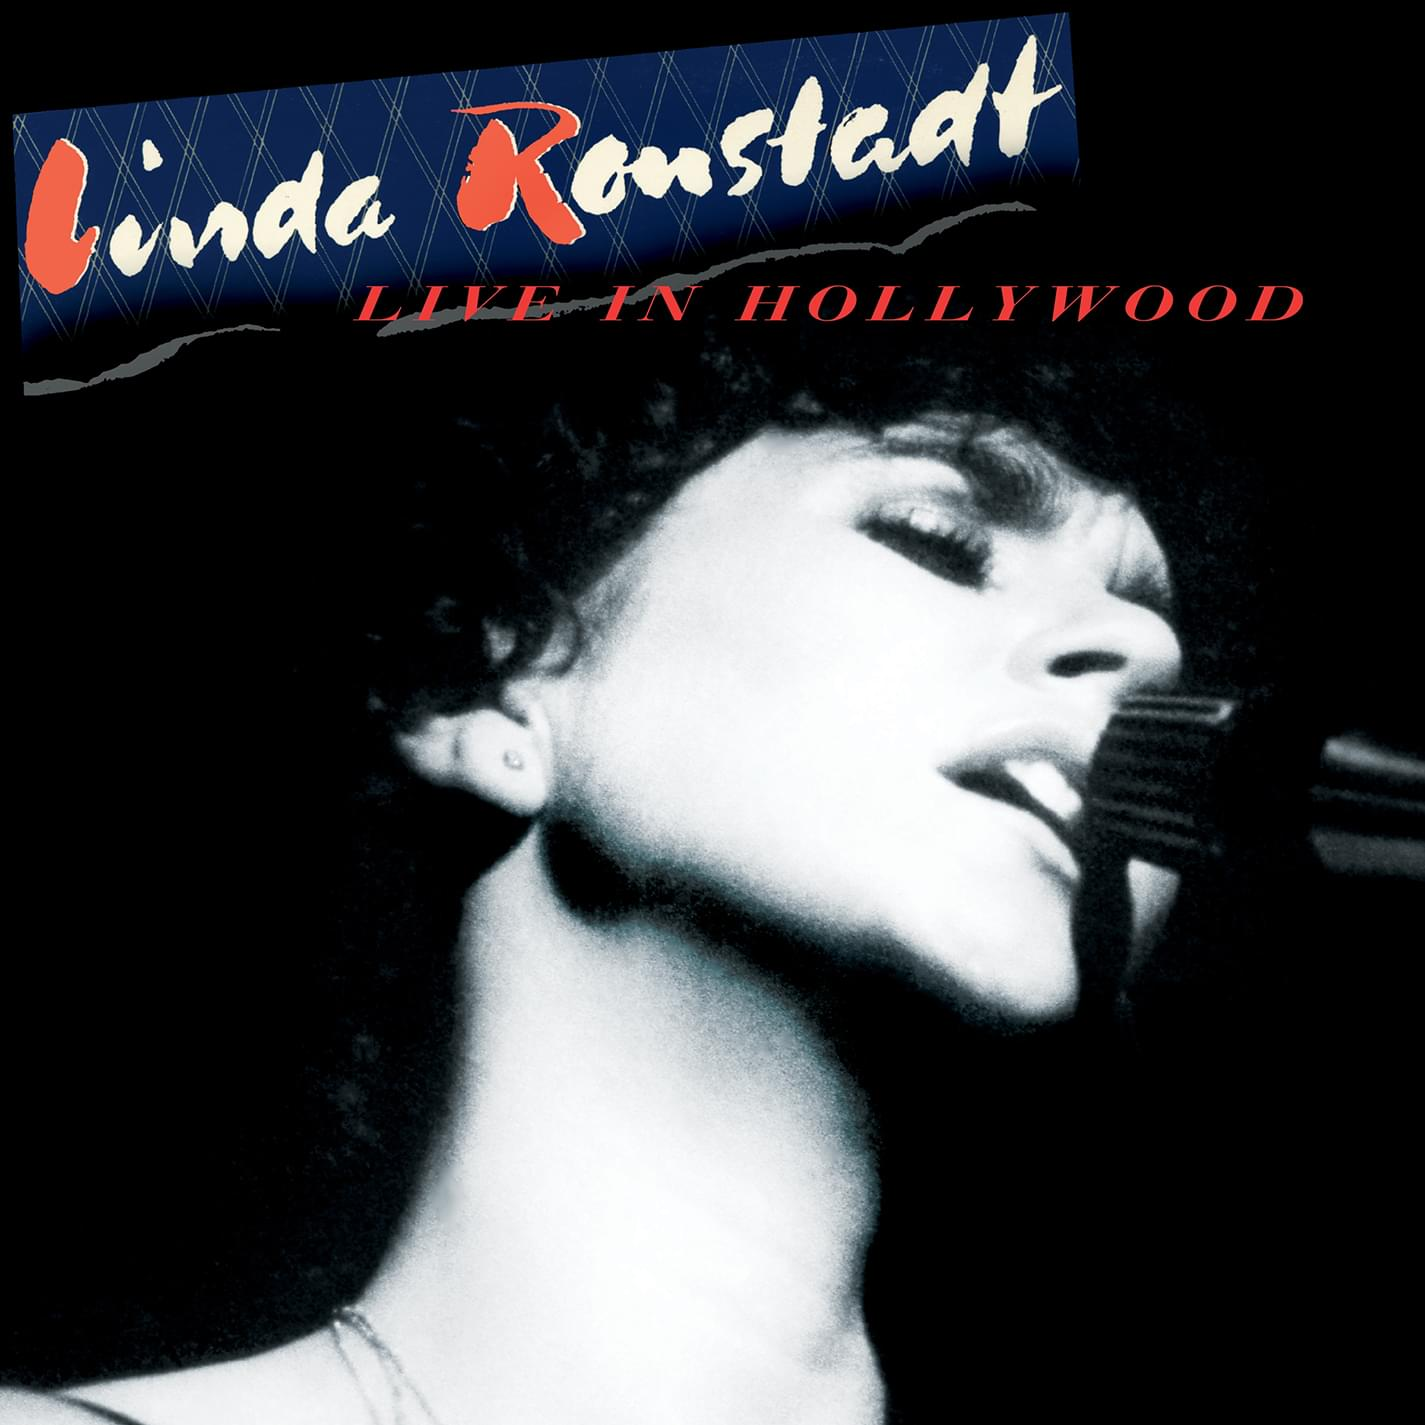 Linda_Ronstadt_Live_In_Hollywood_2719118